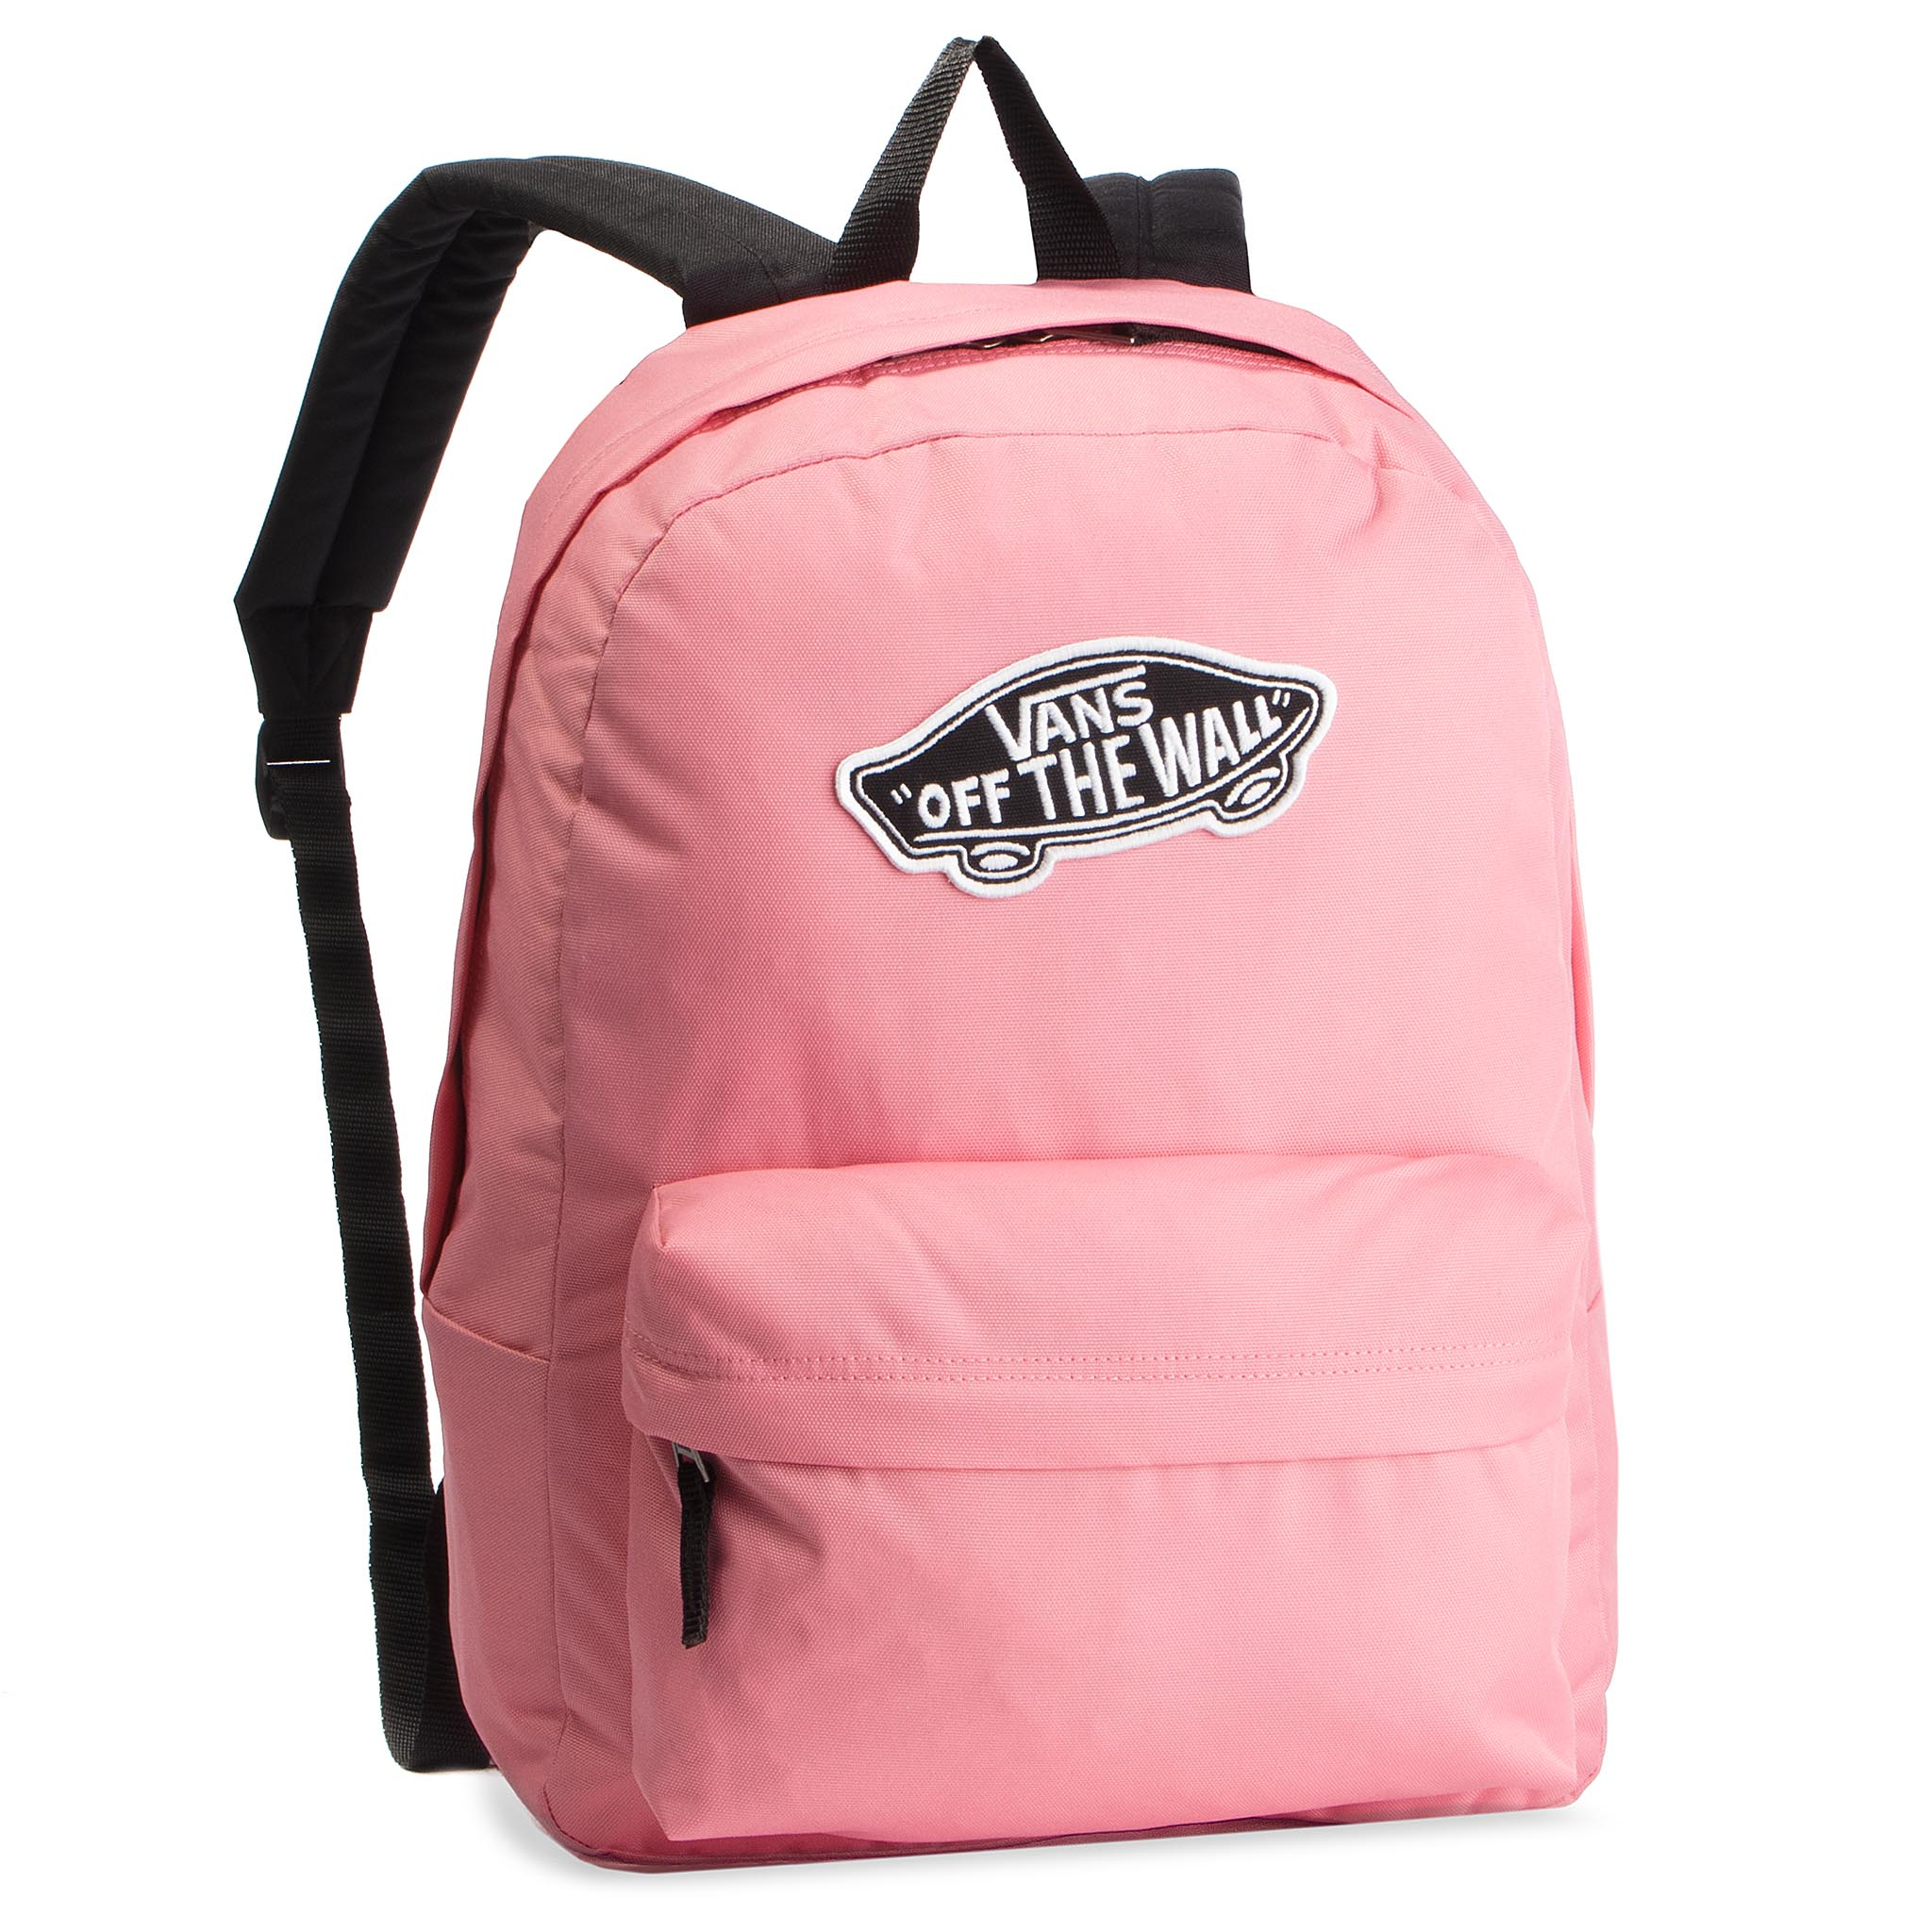 b7f3af7dbd Backpack VANS - Realm Backpack VN000NZ0RHQ Party Stripe - Sports ...